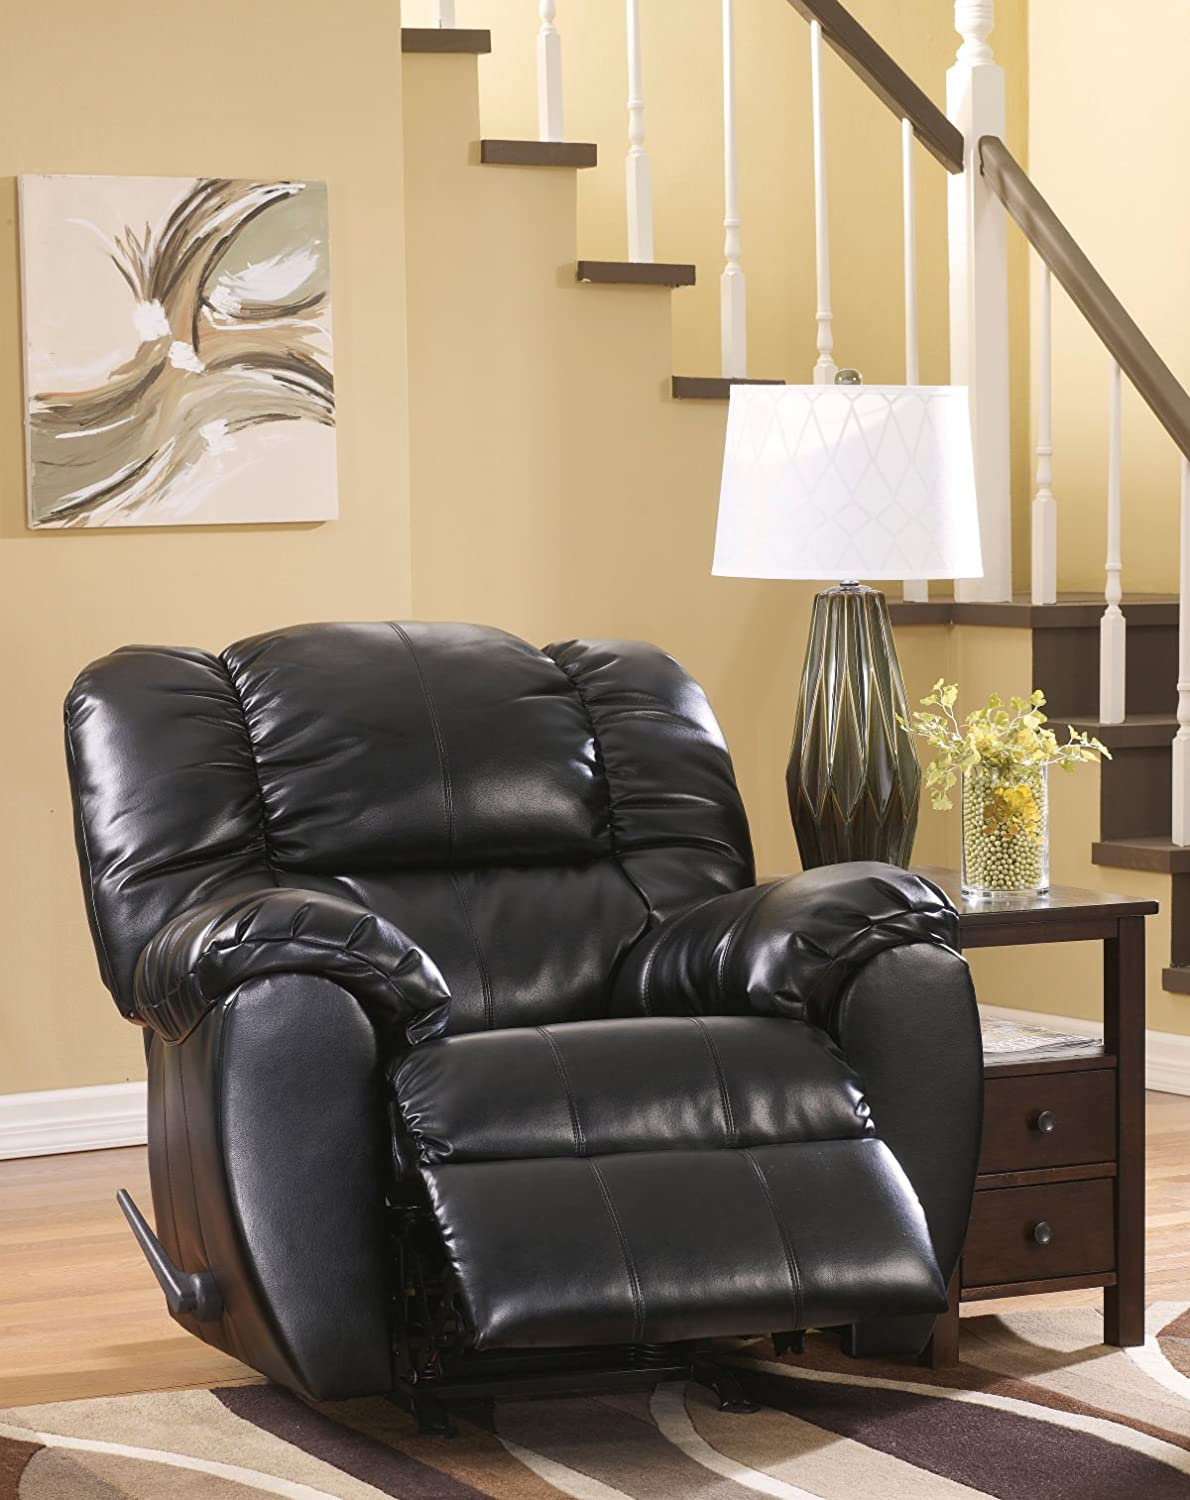 Amazon.com: Contemporary Onyx Dylan DuraBlend Rocker Recliner: Kitchen U0026  Dining